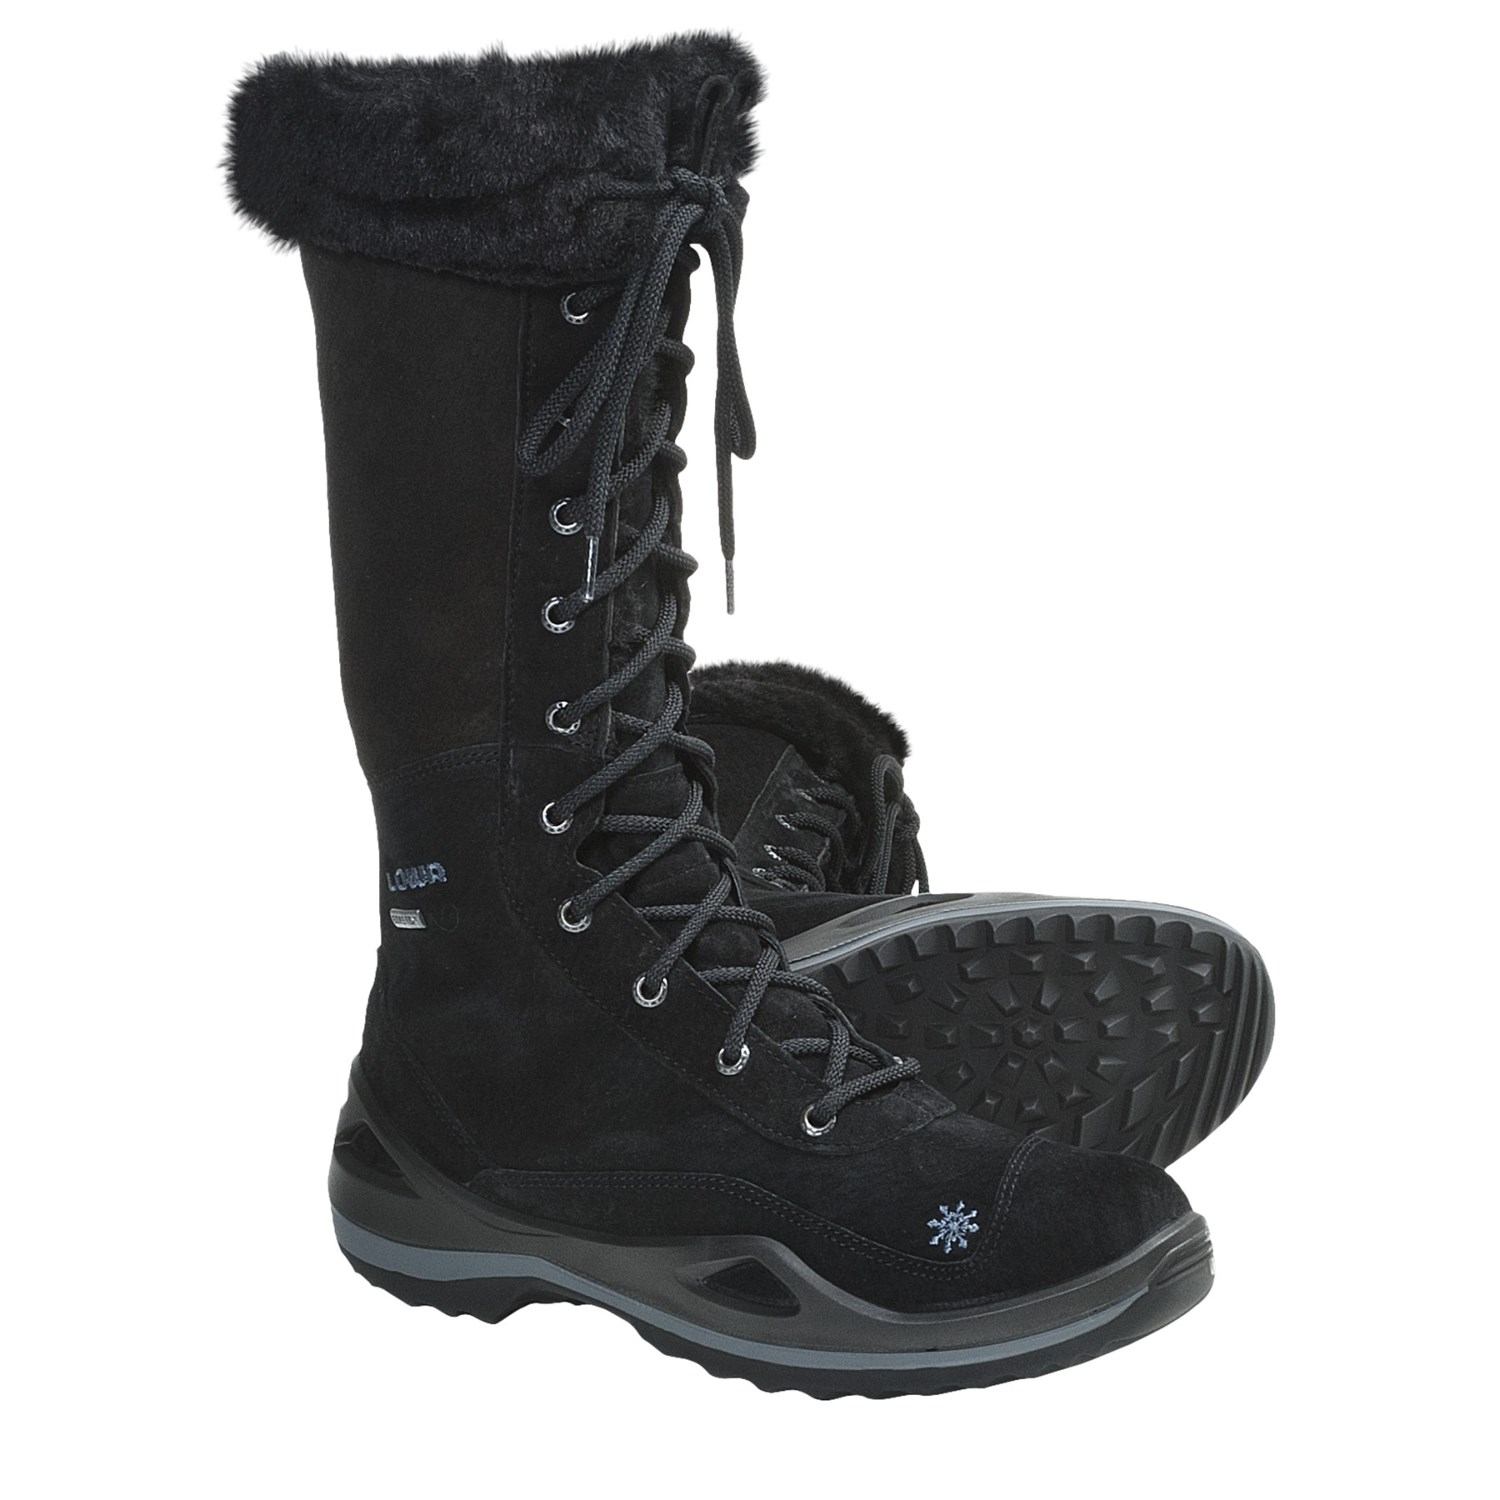 Women's tall winter hiking boots – New Fashion Photo Blog